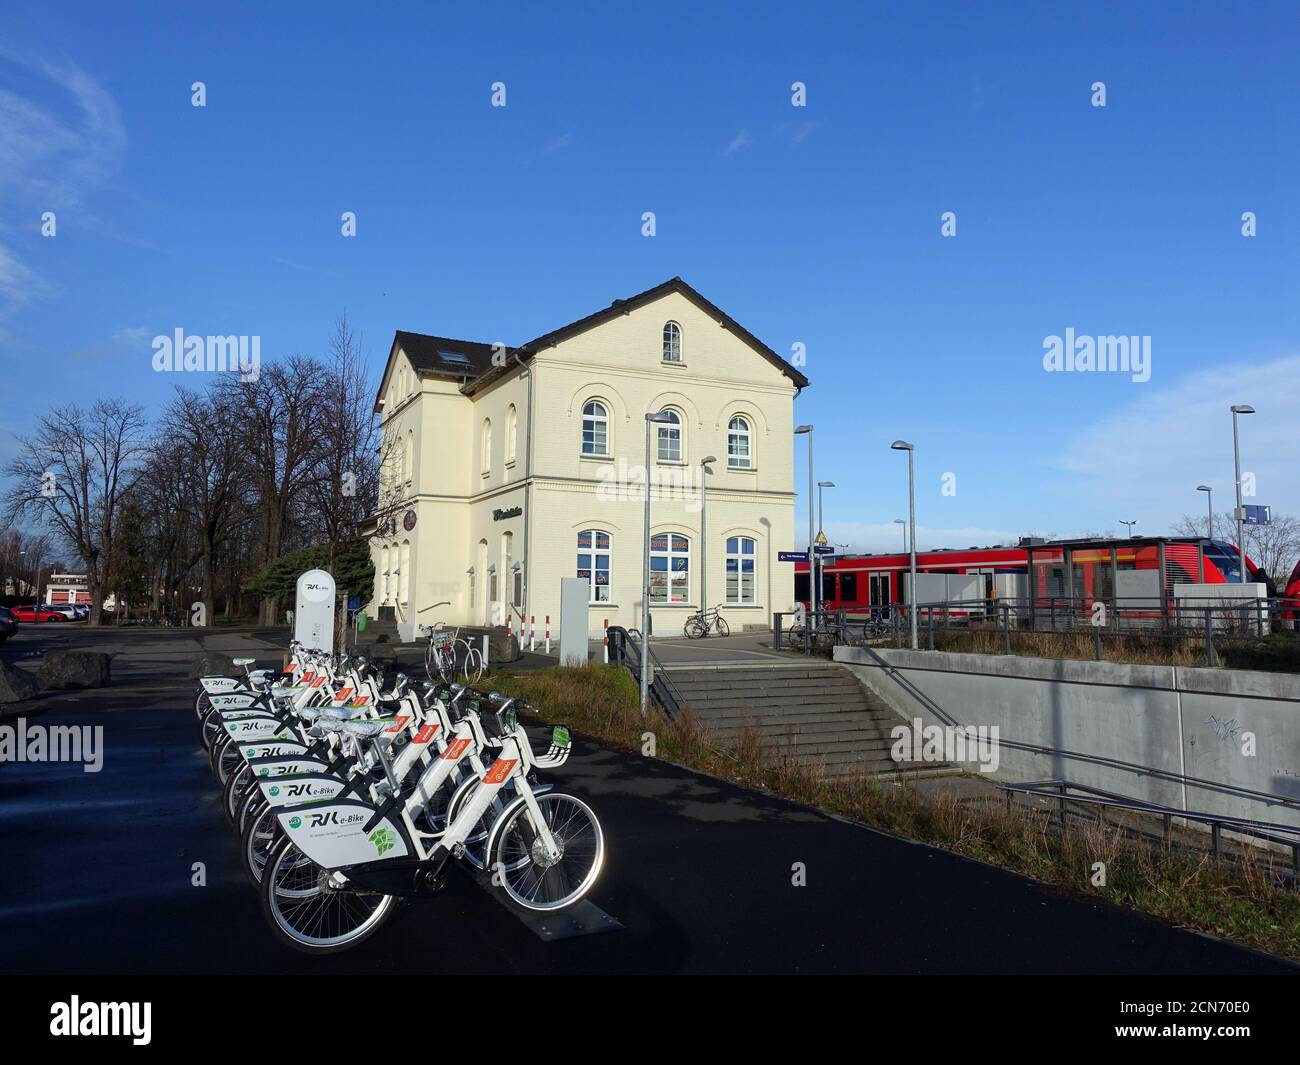 Rental station for nextbike electric bikes at Weilerswist Railway station Stock Photo